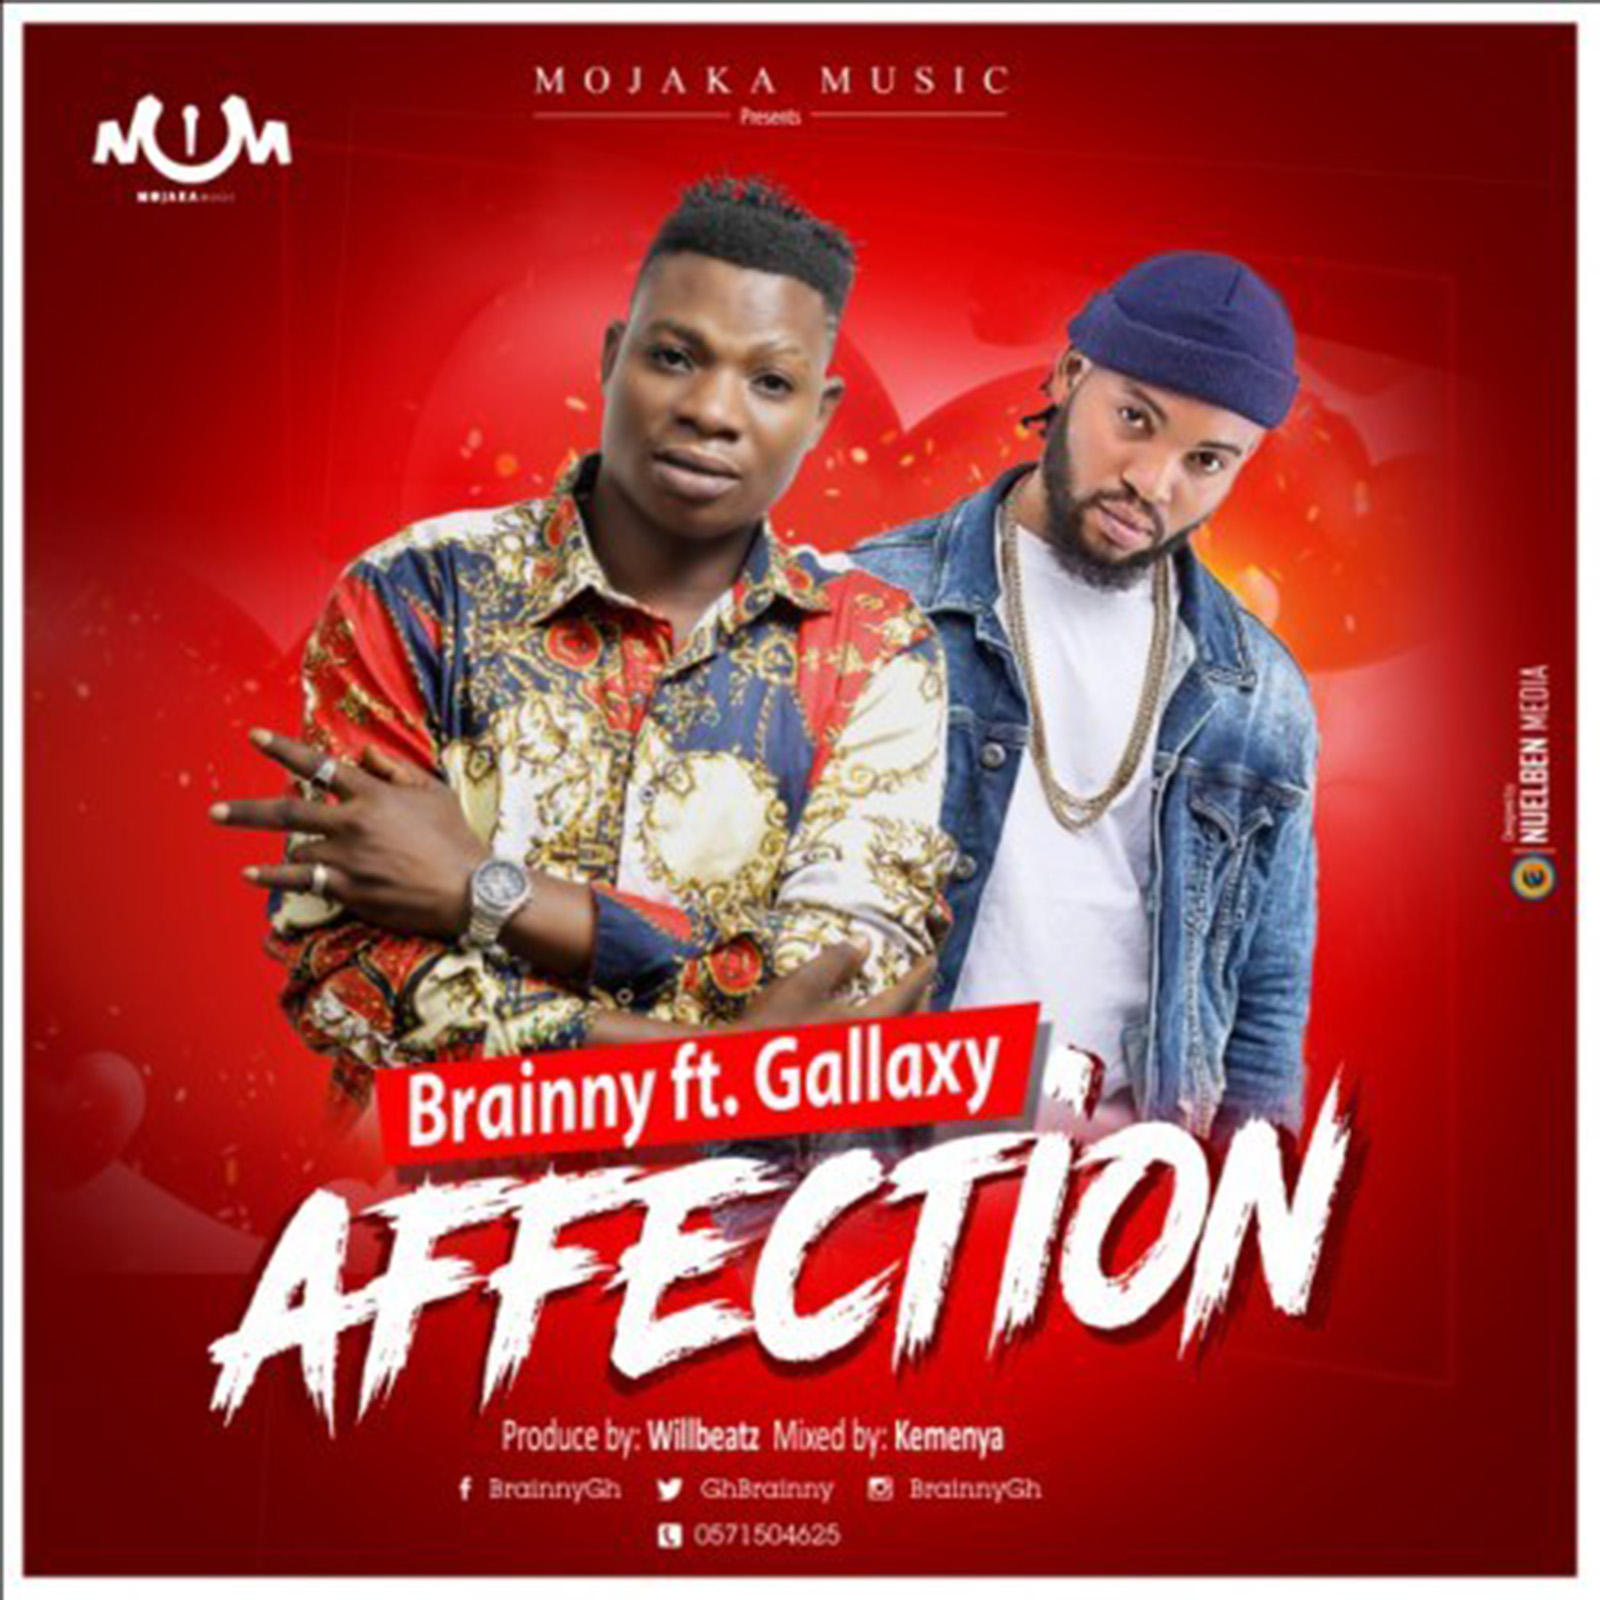 Affection by Brainny feat. Gallaxy